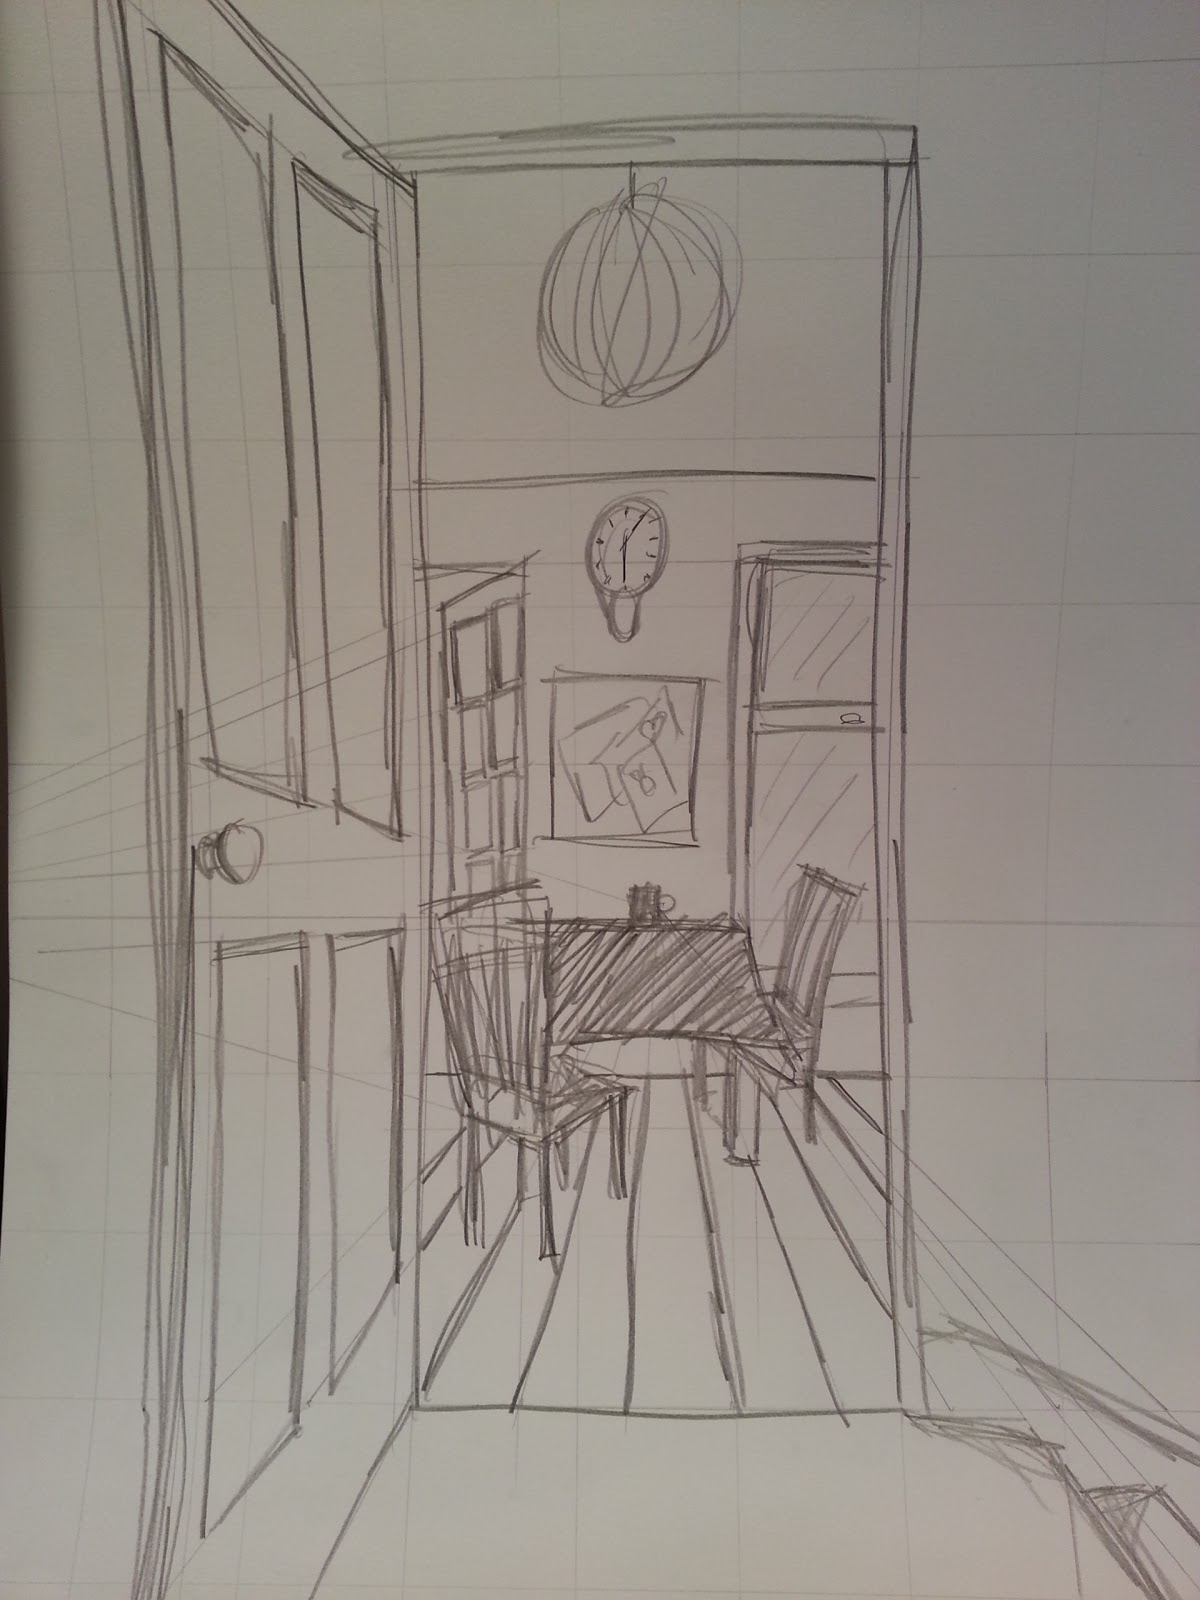 open door drawing perspective. For This Exercise I Drew A Scene From An Open Door Leading Into My Kitchen, With Table And Chairs, Window The Garden. Drawing Perspective